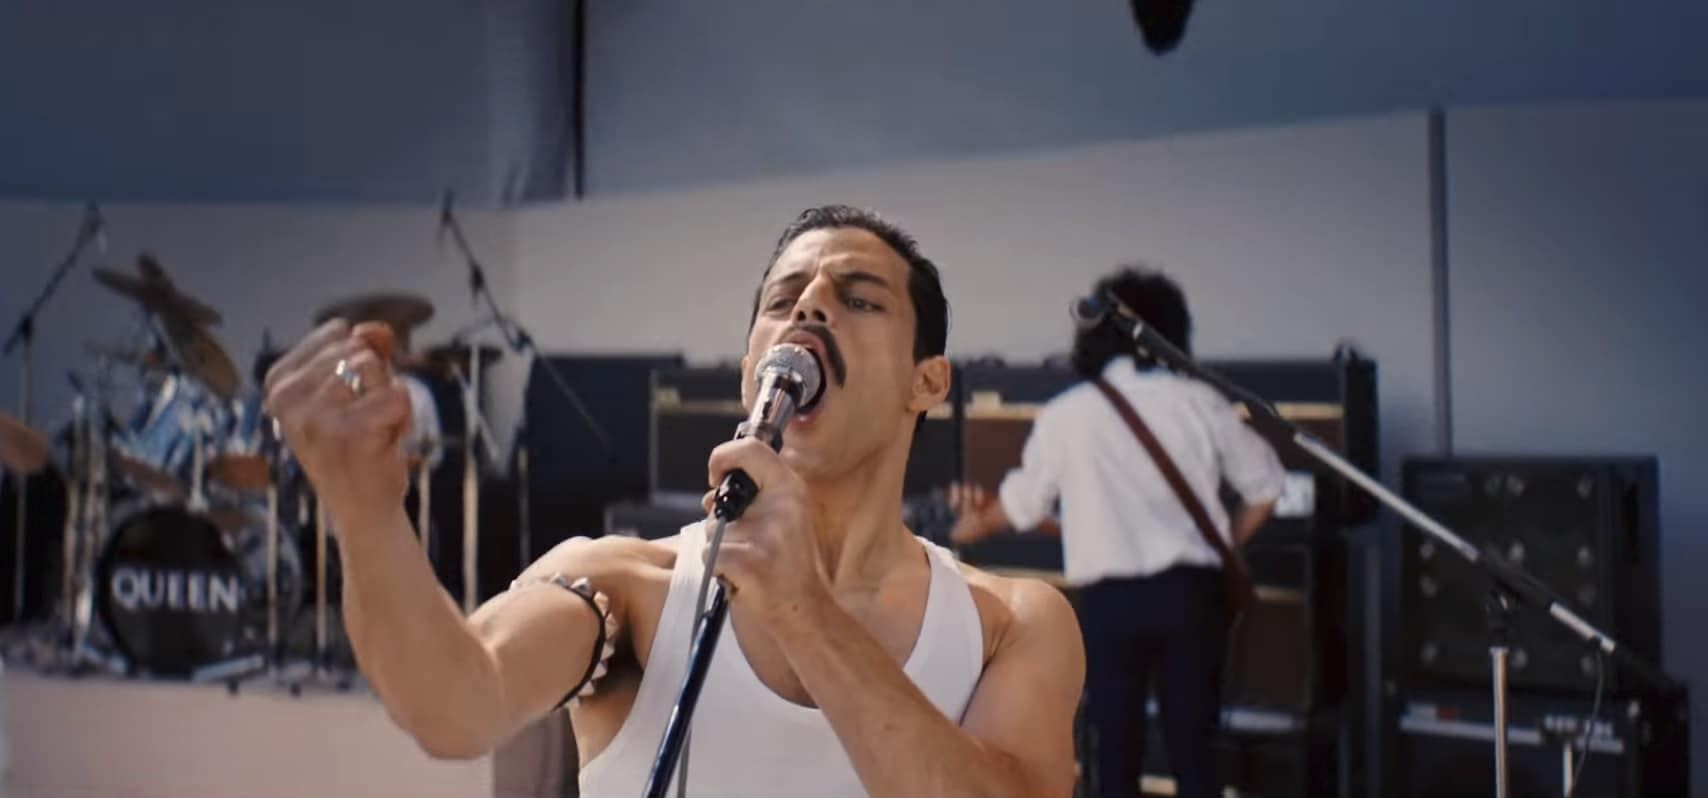 queen bohemian rhapsody analysis Freddie conjures up gripping imagery in the march of the black queen, which fans argue is a masterpiece that rivals bohemian rhapsody because of the mood changes, lyrics and the struggle of the central character is so compelling.